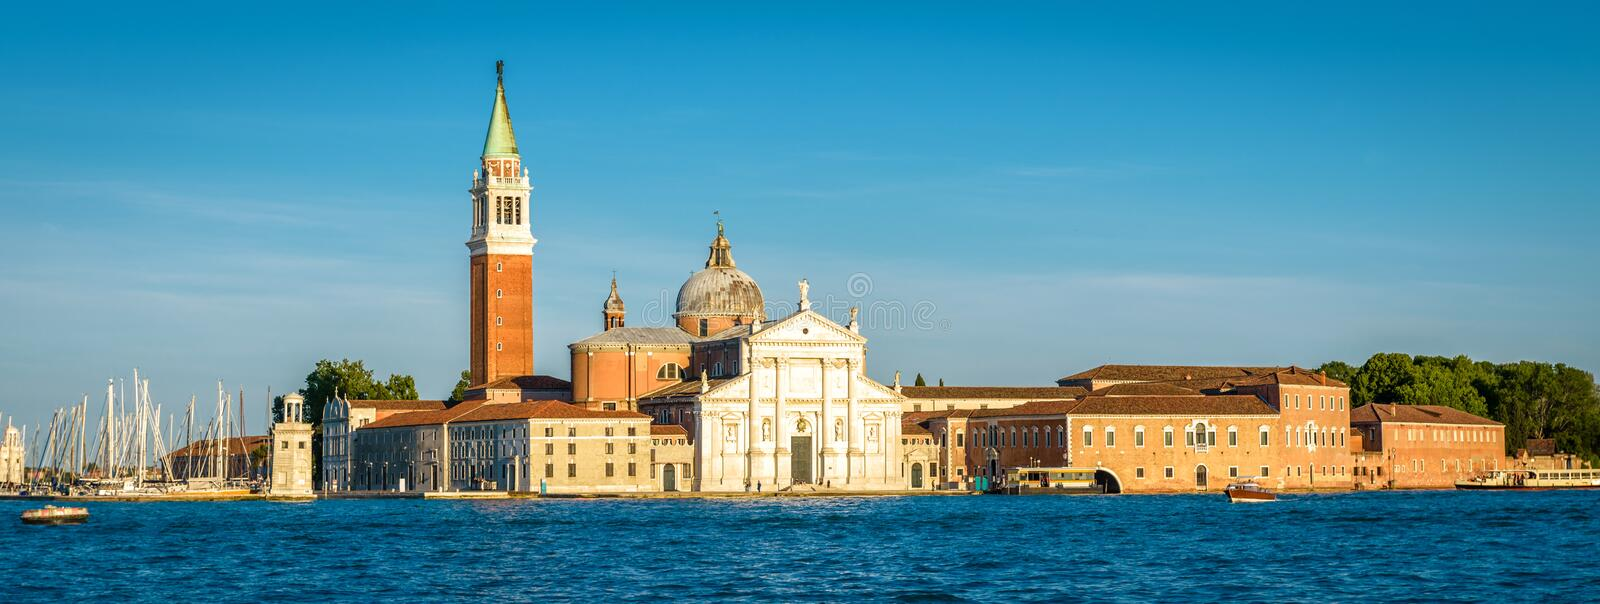 Venice at sunset, Italy. San Giorgio Maggiore island in Venetian lagoon. Panoramic view of marine Venice city. Beautiful landscape of Venice in summer stock images